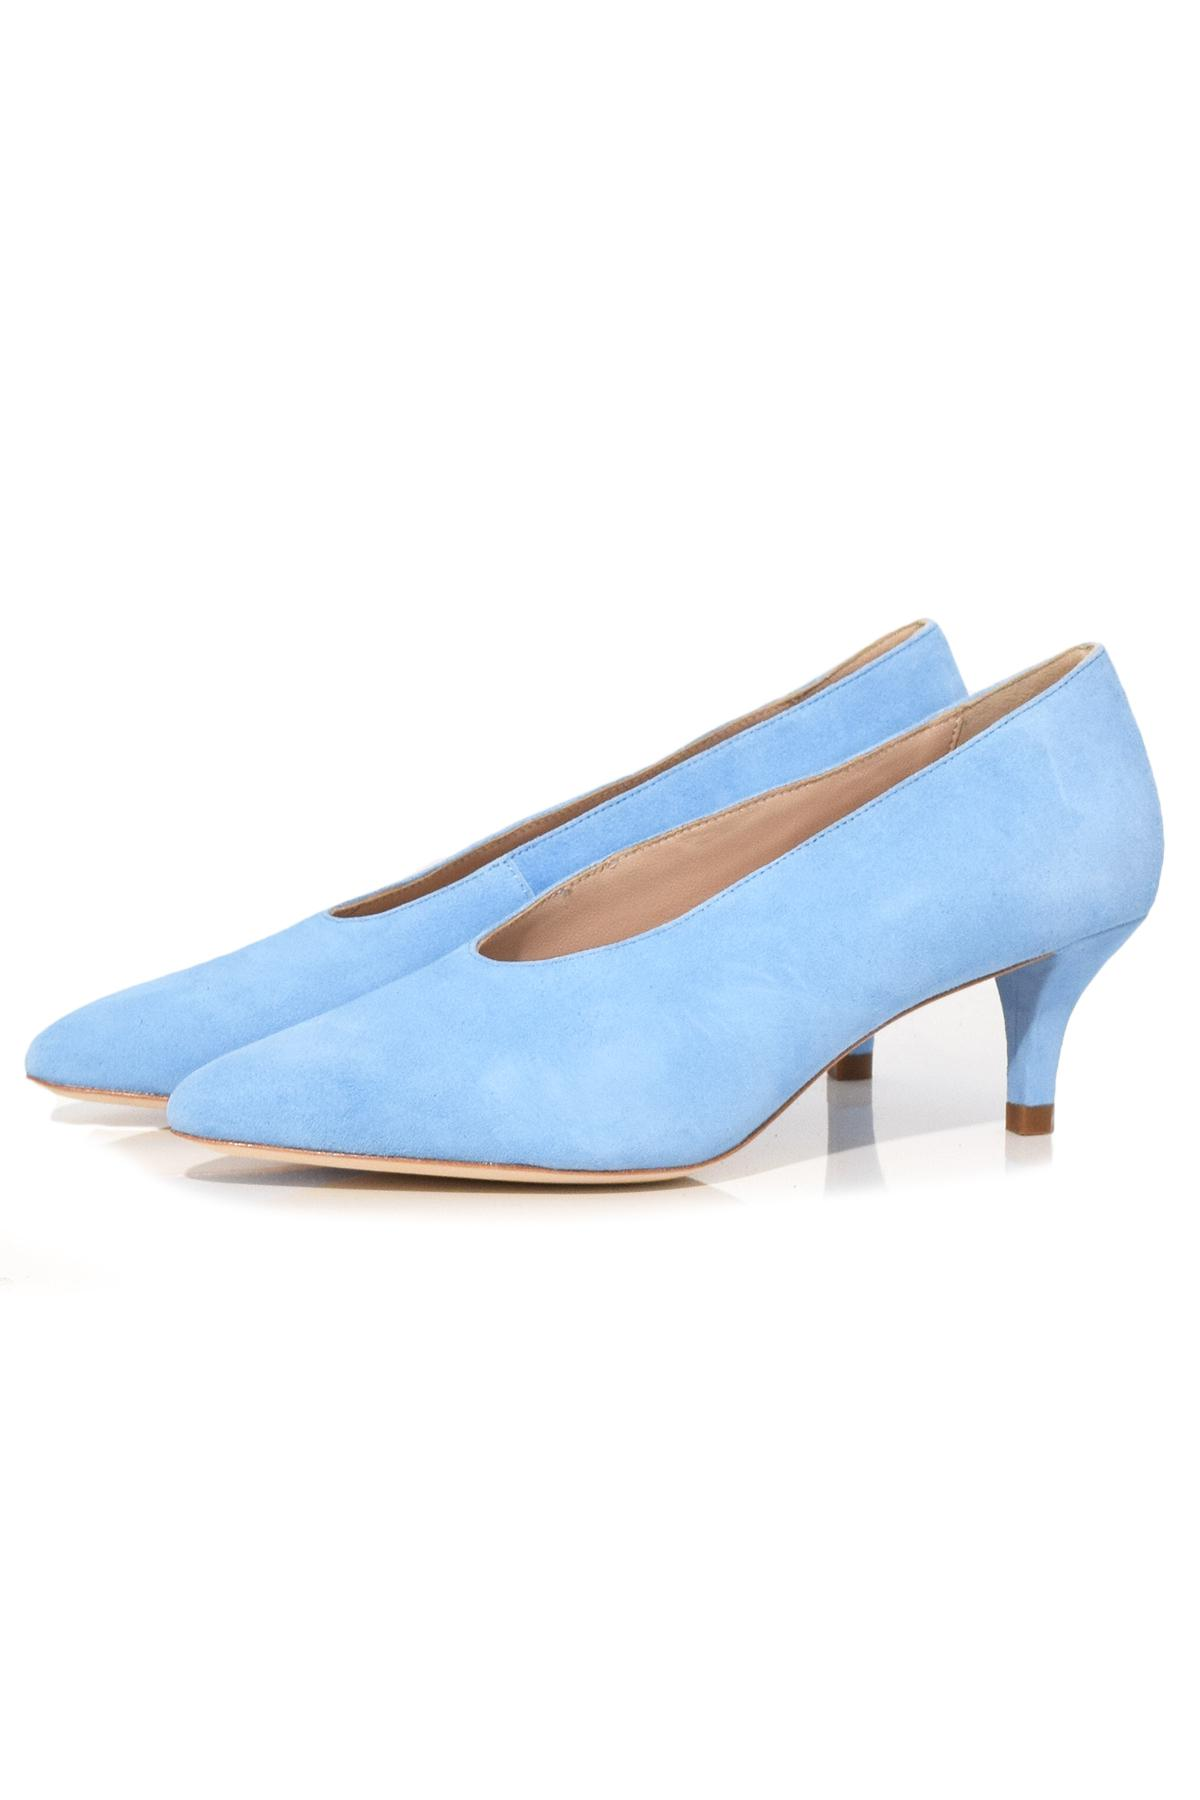 28a1a6532e9 Lyst - Loeffler Randall Suede Pointed-toe Pumps in Blue